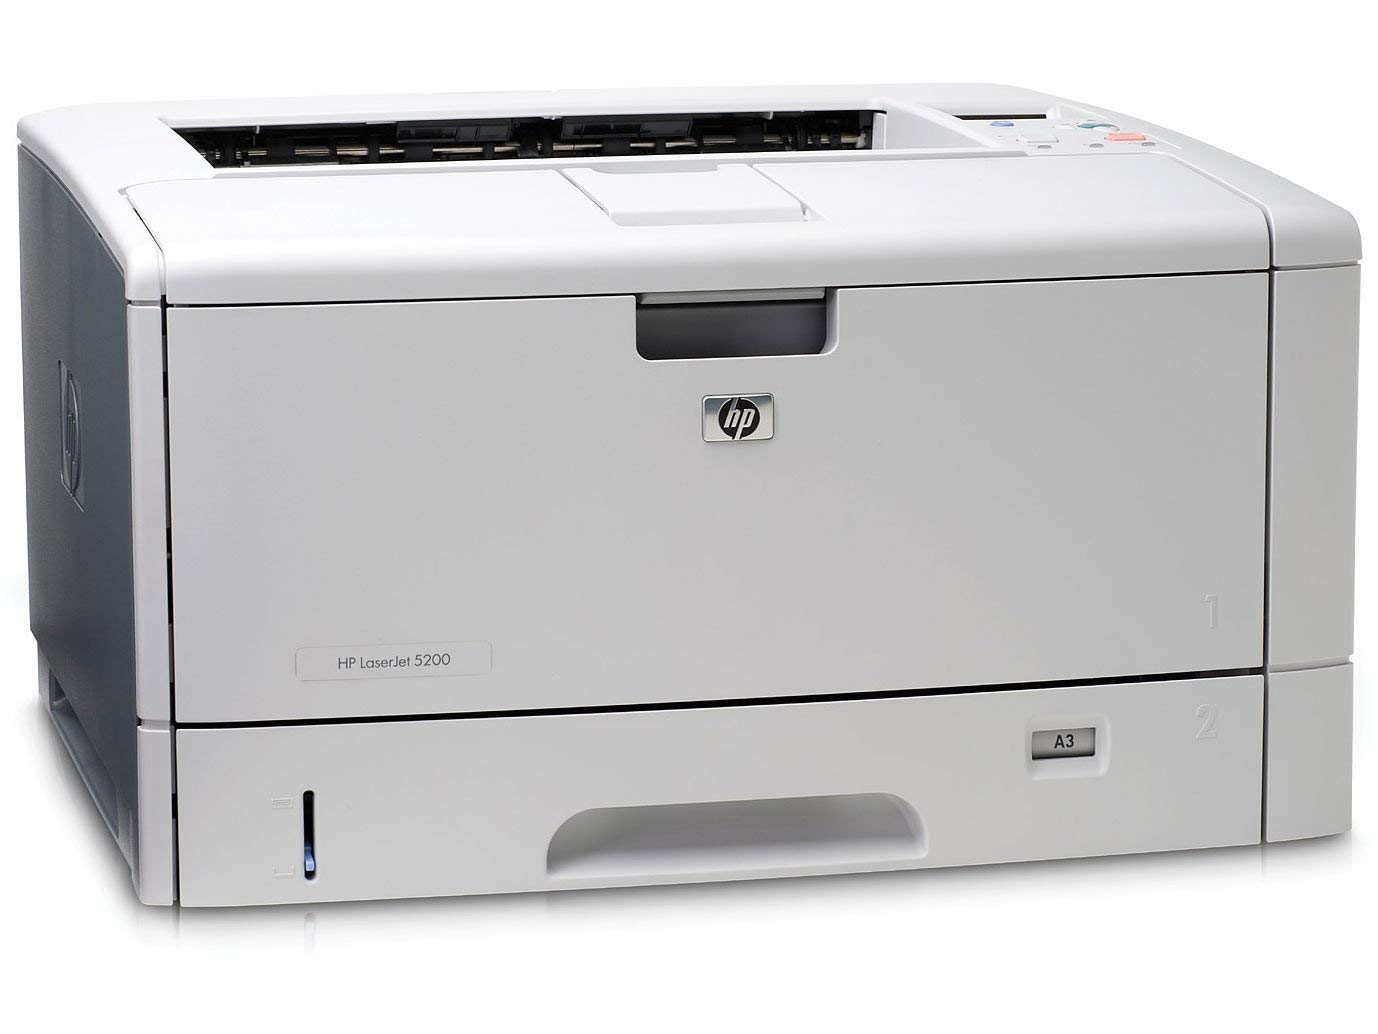 Amazon.com: Hewlett Packard Refurbish Laserjet 5200 Printer ...